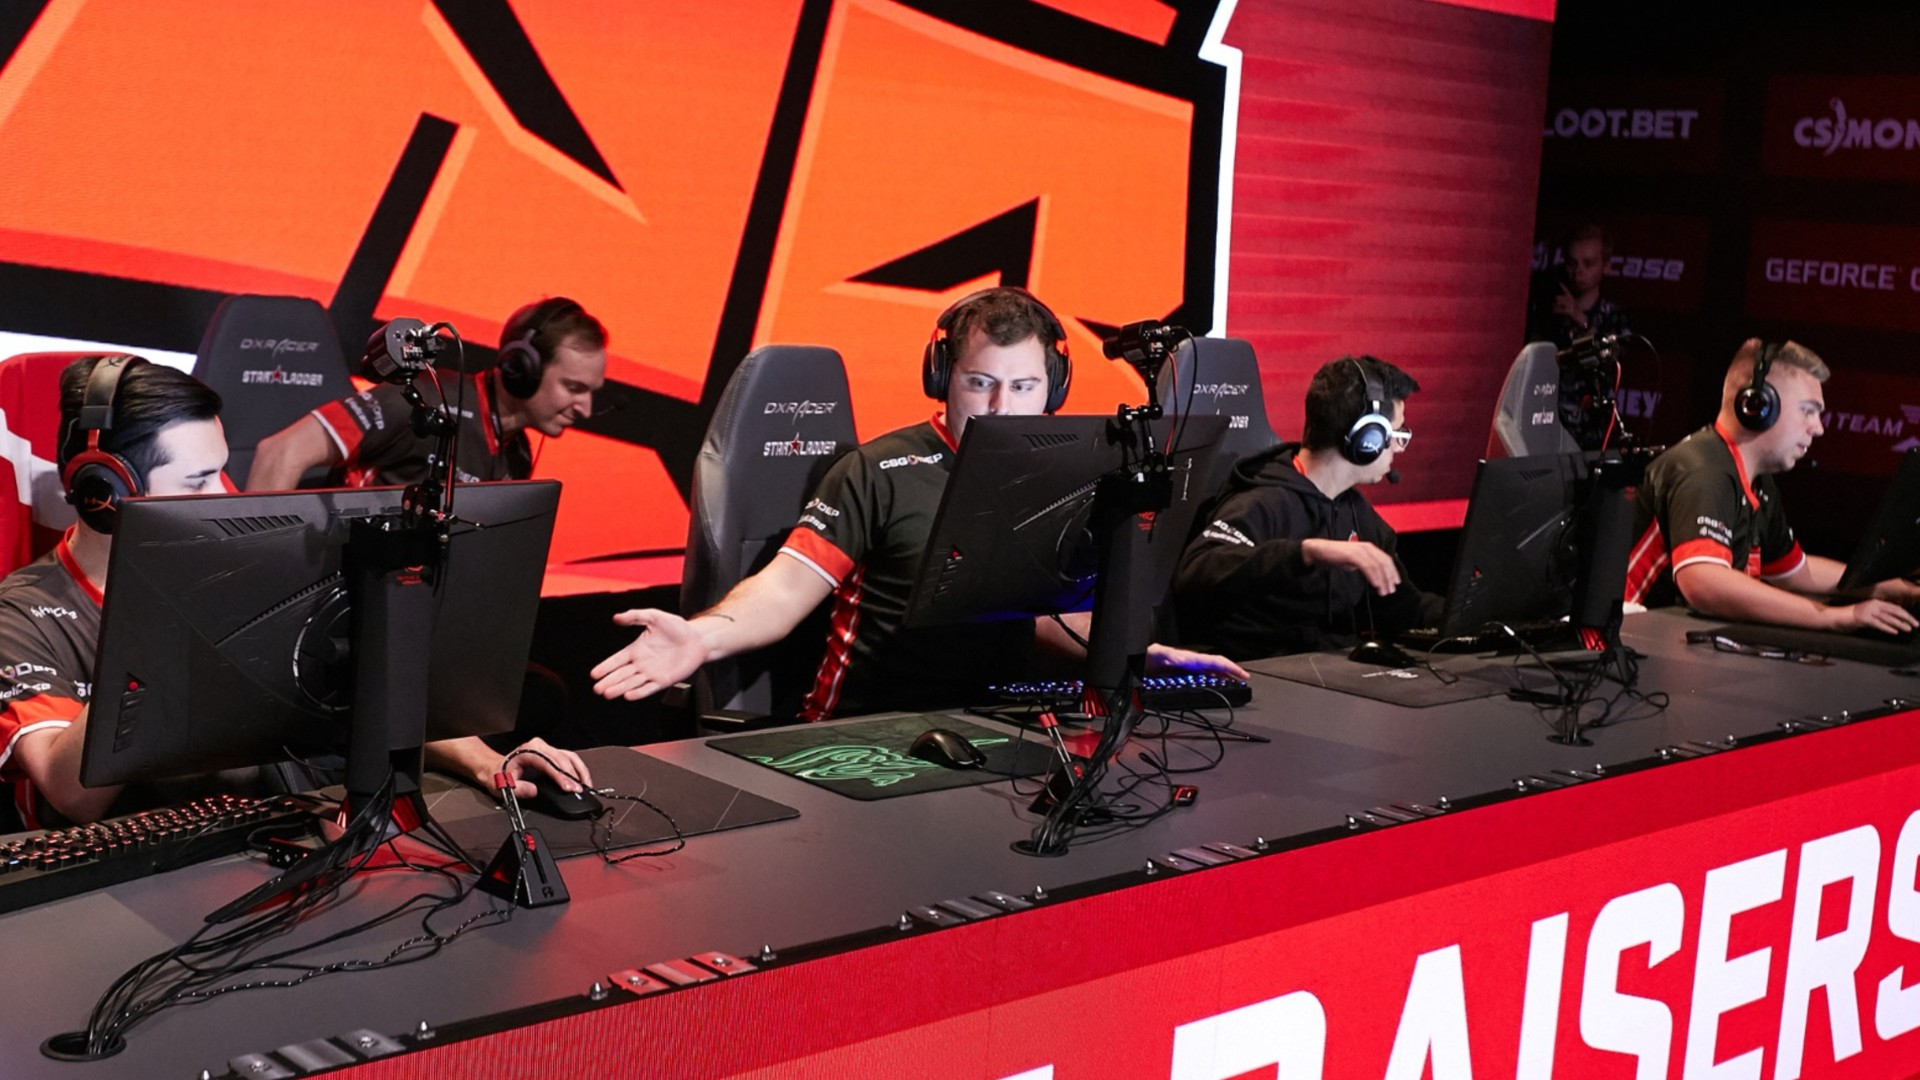 ANGE1 competing in CSGO StarLadder event.